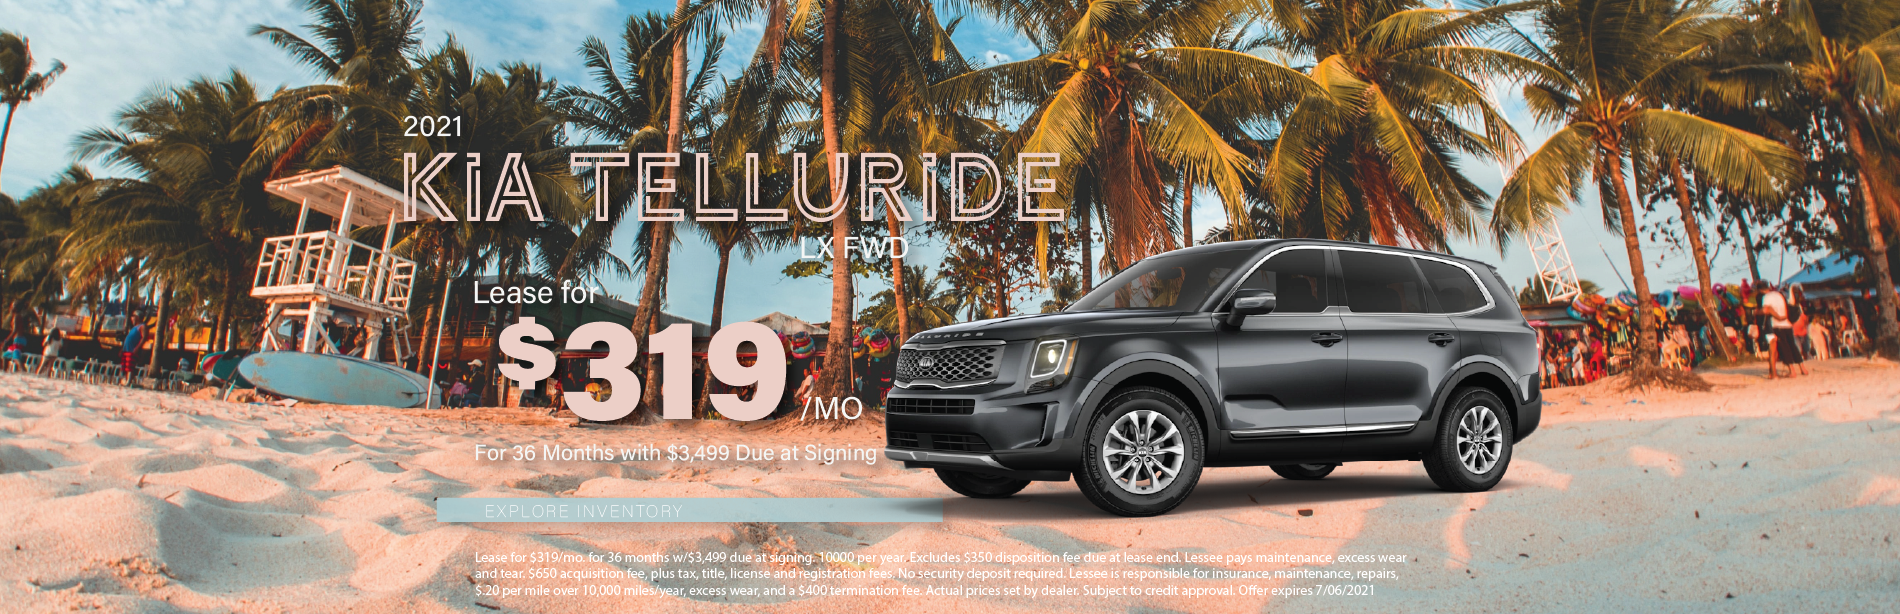 Lafontaine Kia Telluride – May